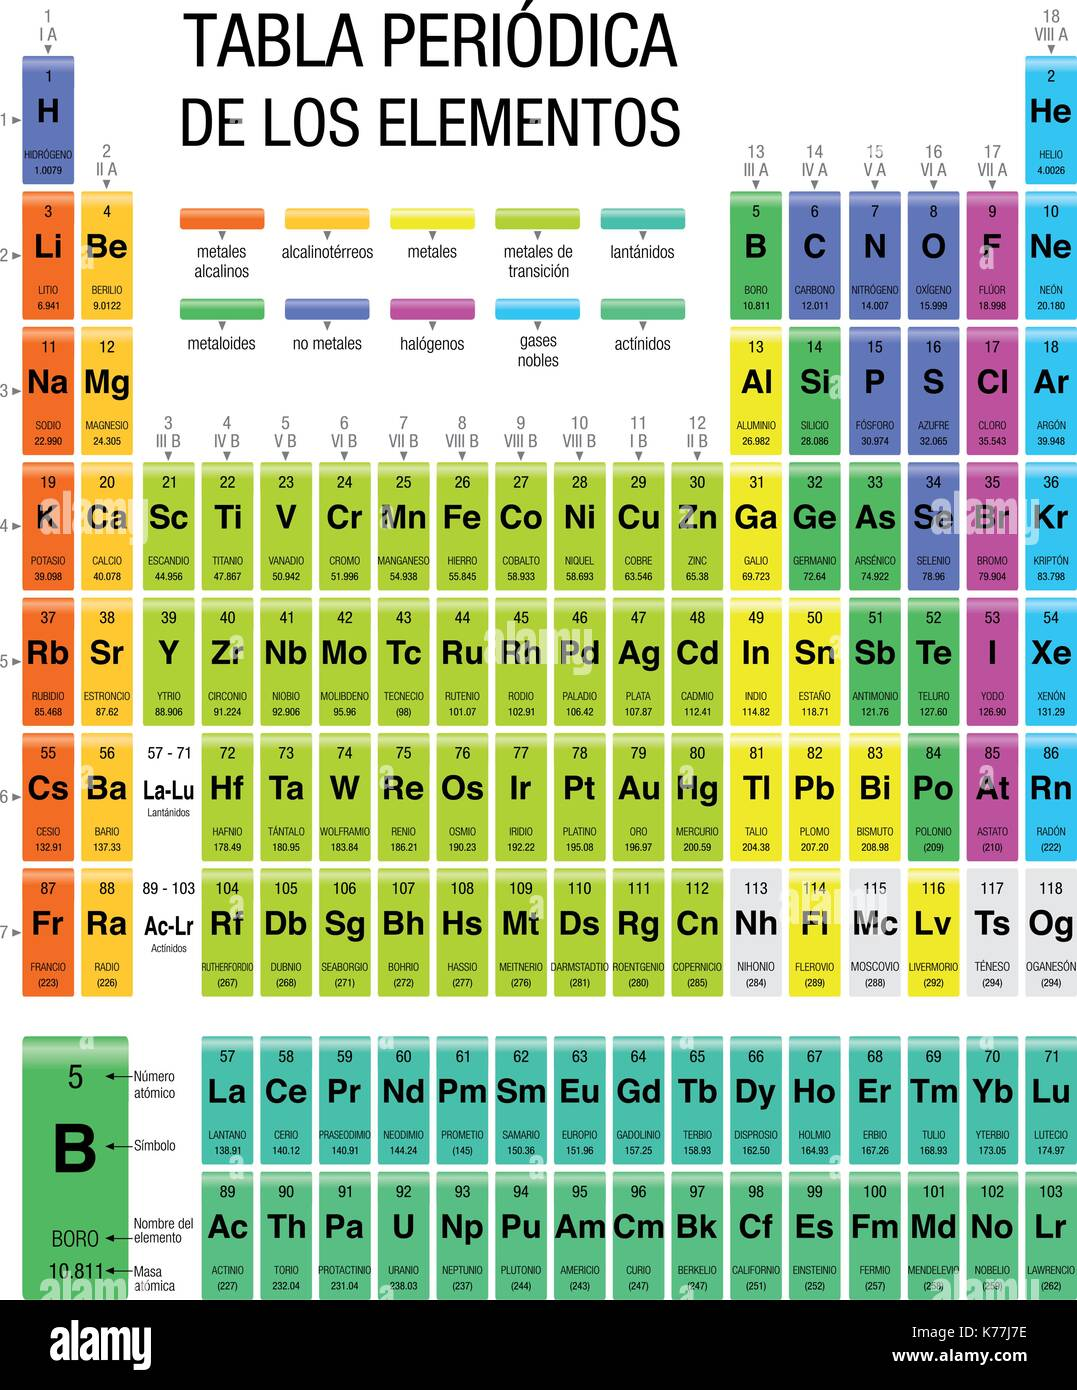 Tabla periodica de los elementos periodic table of elements in tabla periodica de los elementos periodic table of elements in spanish language size 216 x 28 cm vector image urtaz Image collections